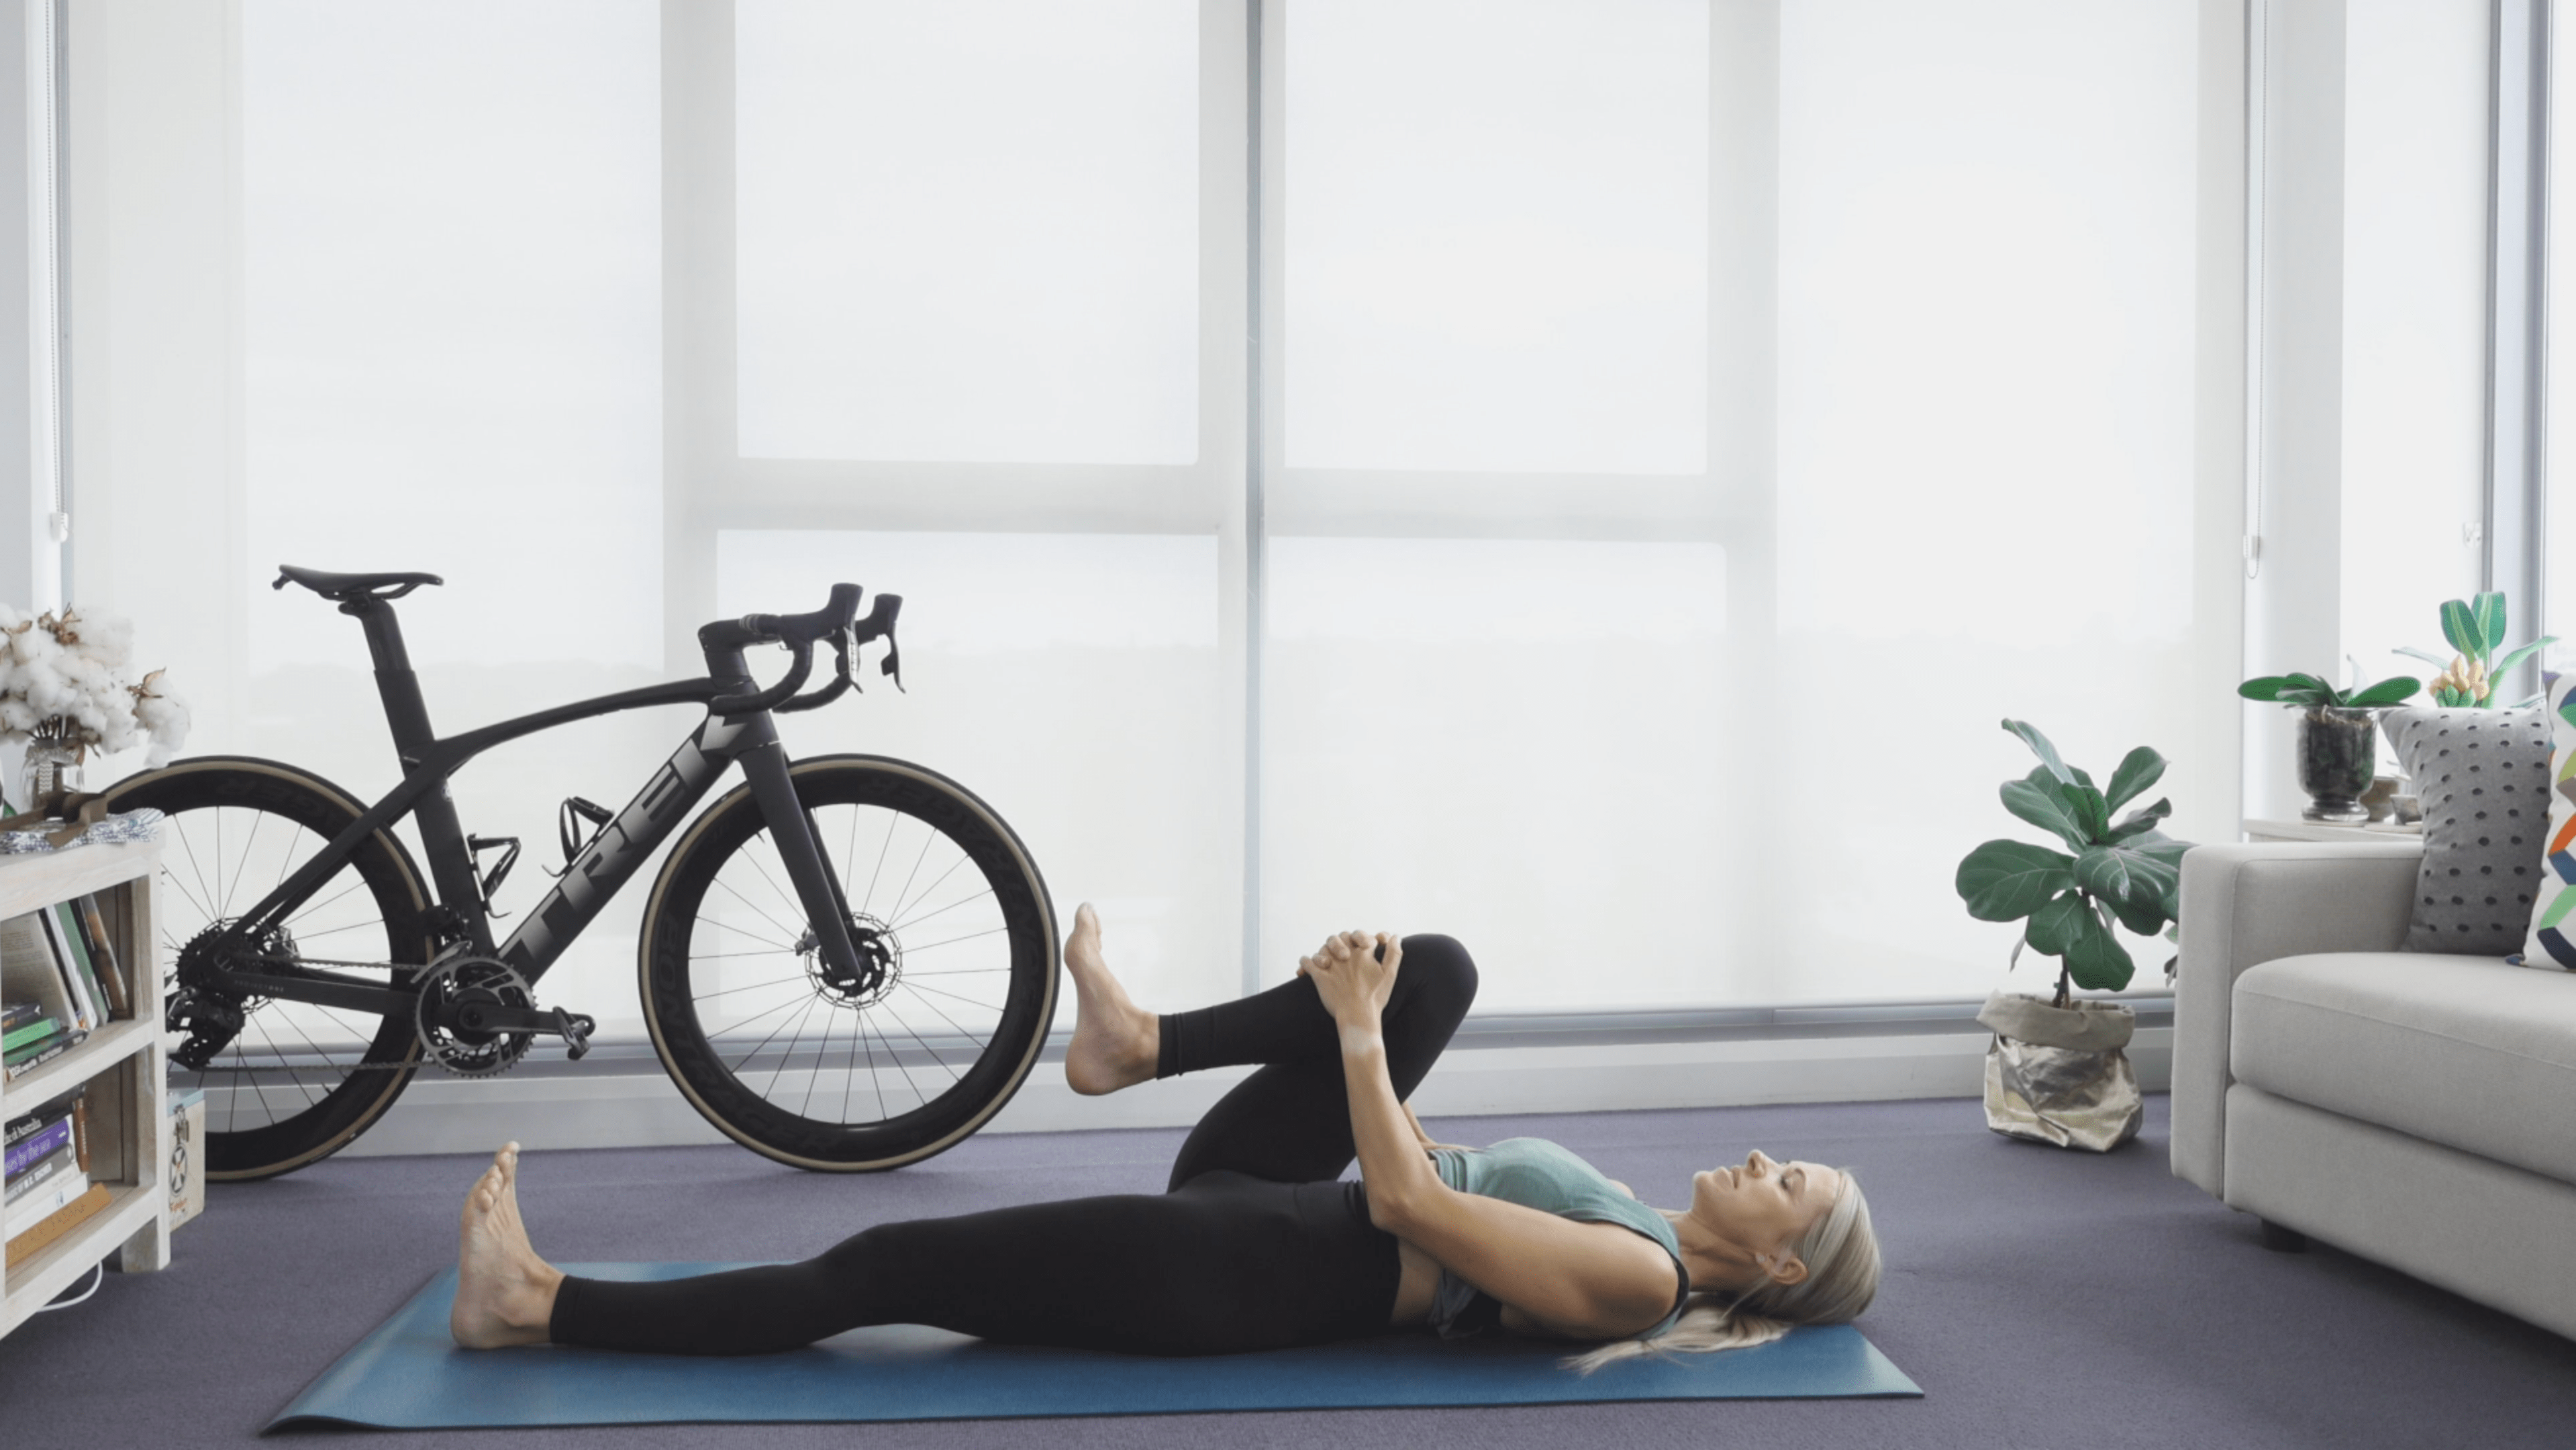 Knee Chest Yoga Cycling